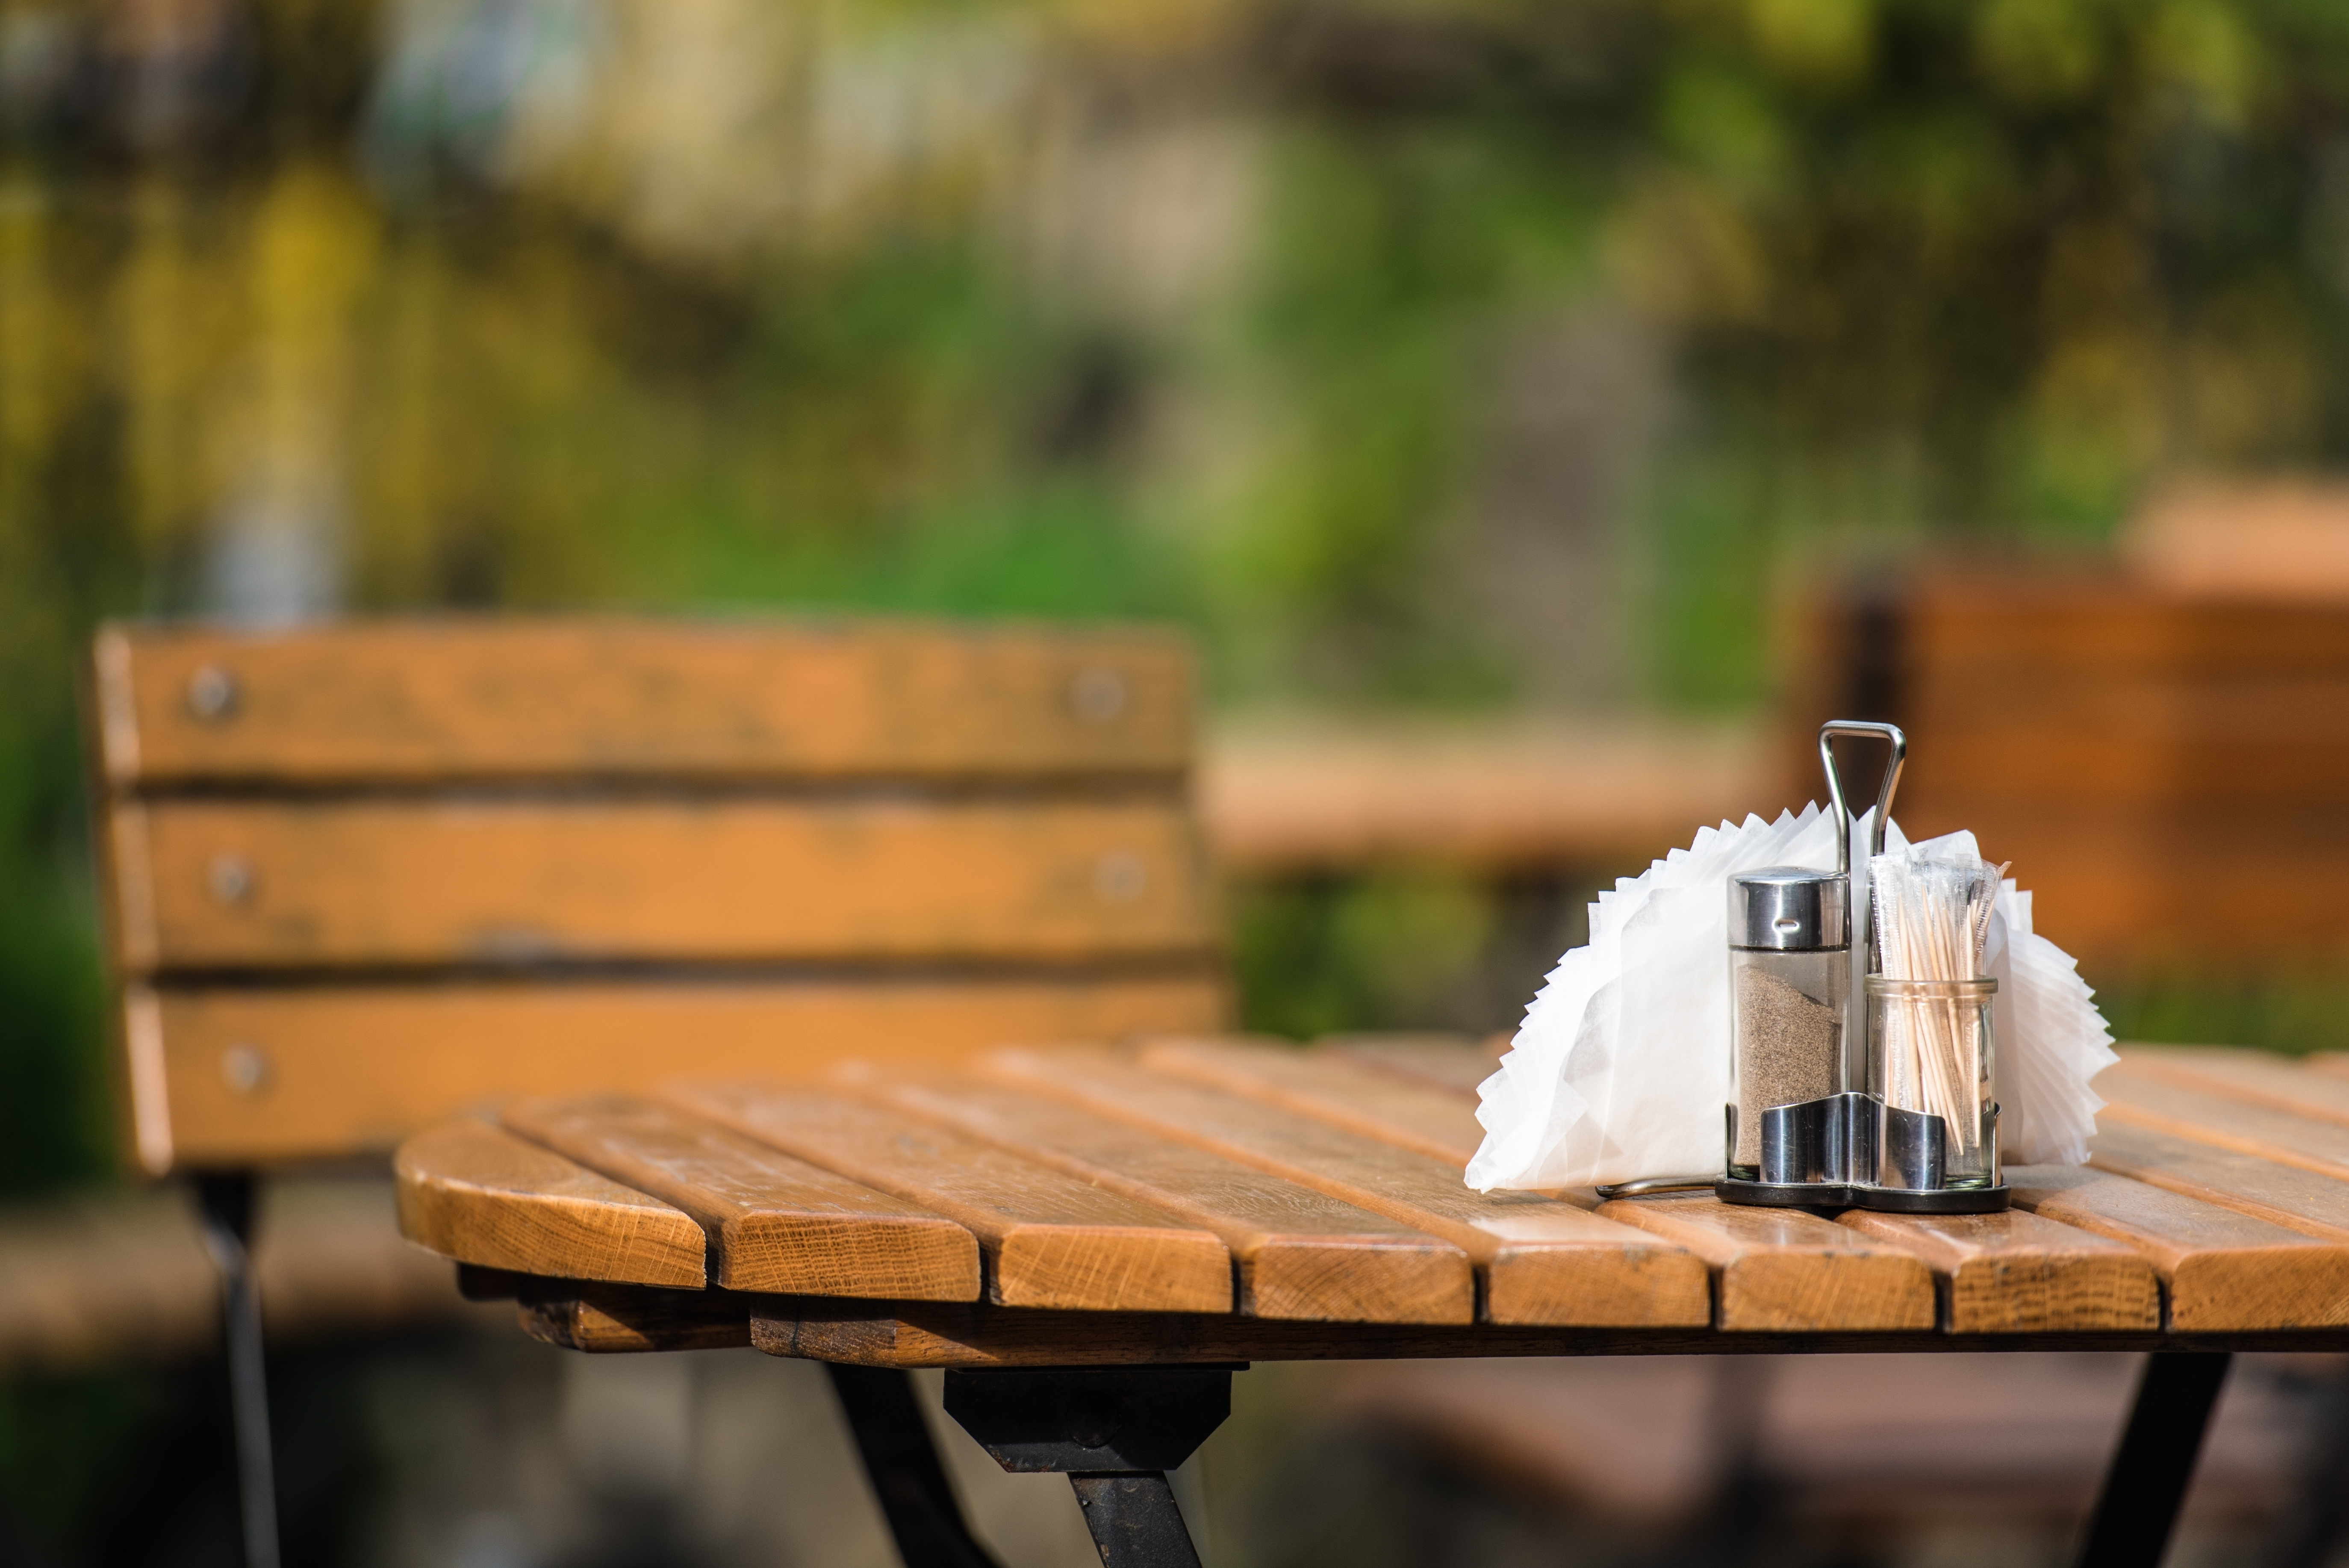 An empty table in an outdoor plaza, with the background blurred and salt and pepper shakers in the foreground